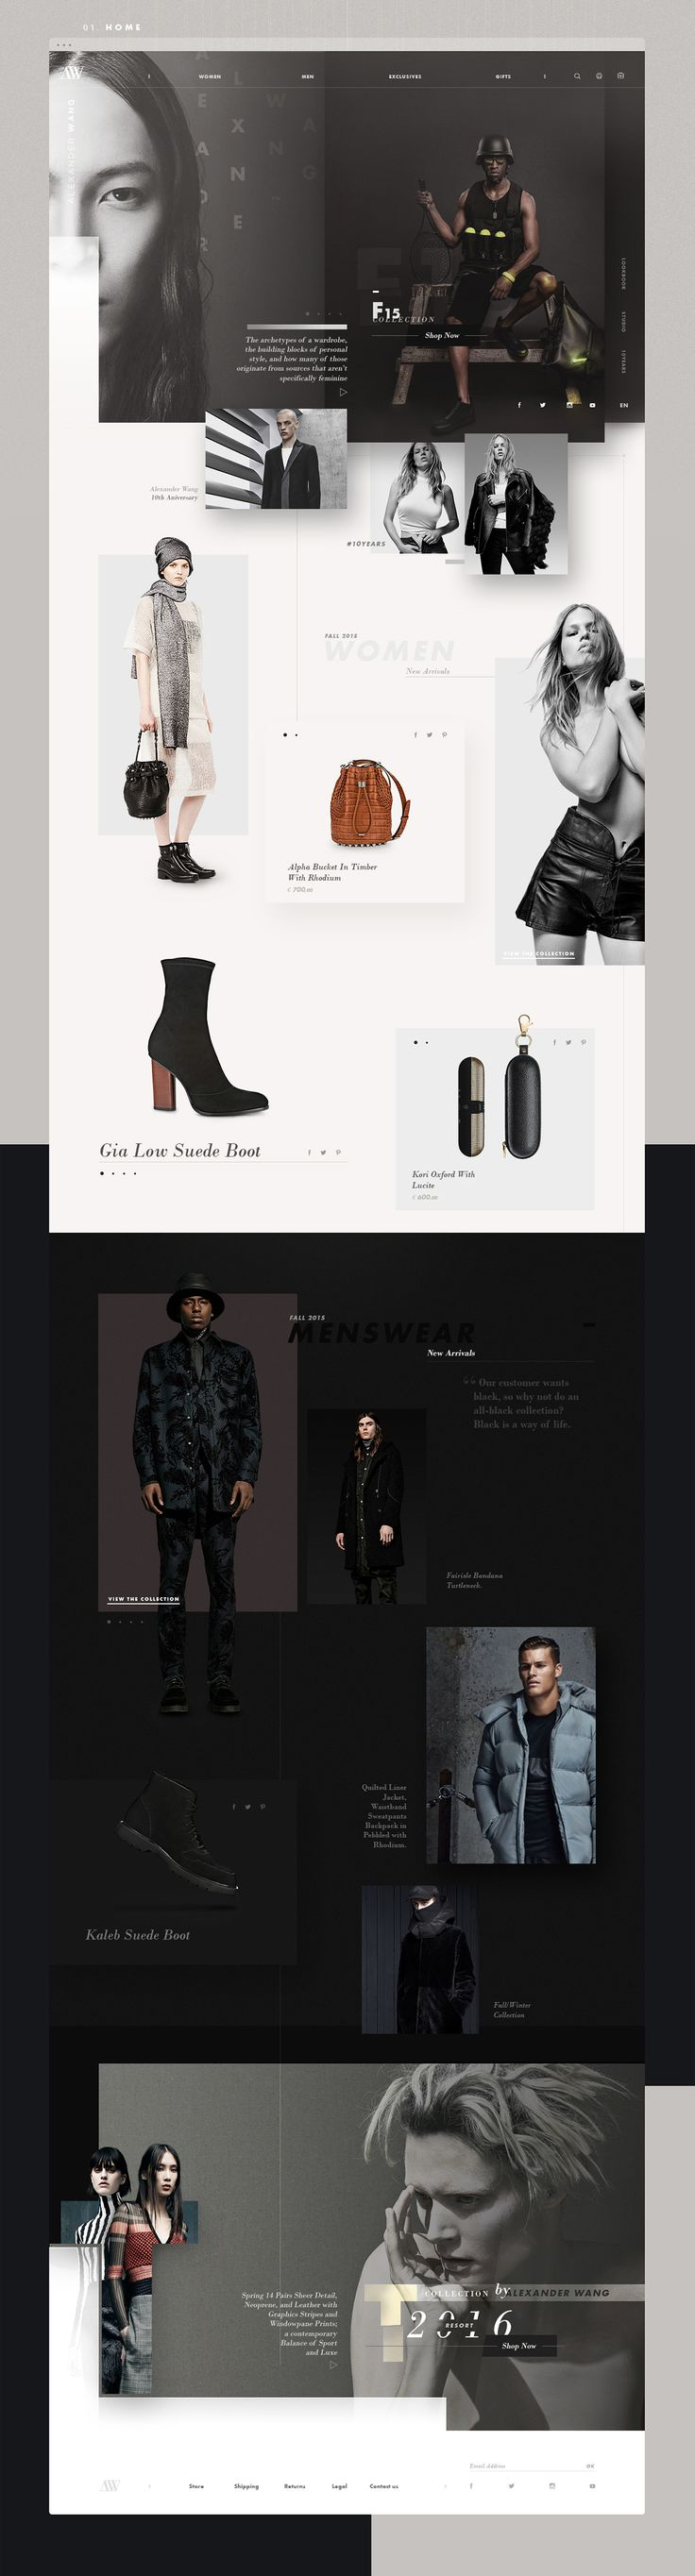 Alexander Wang | Redesign Concept on Web Design Served